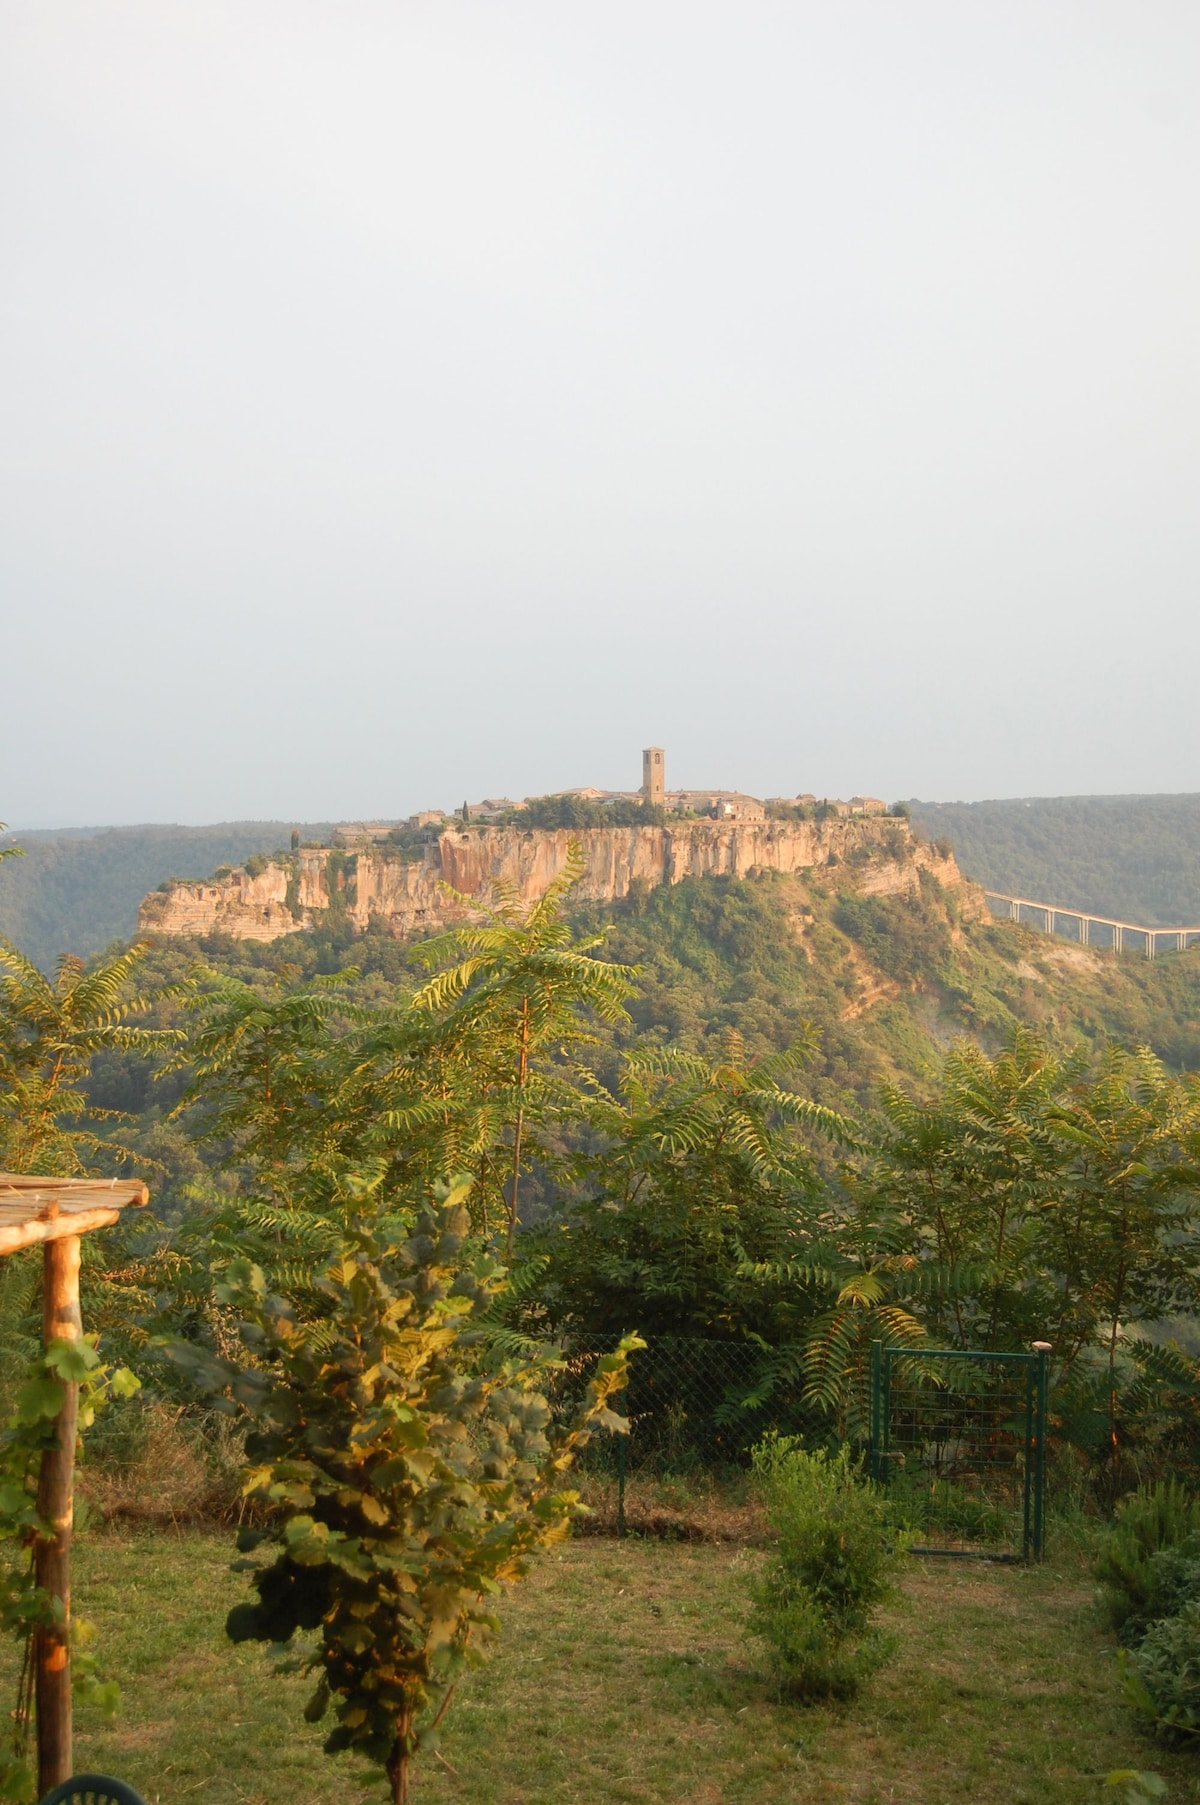 garden view of Civita di Bagnoregio